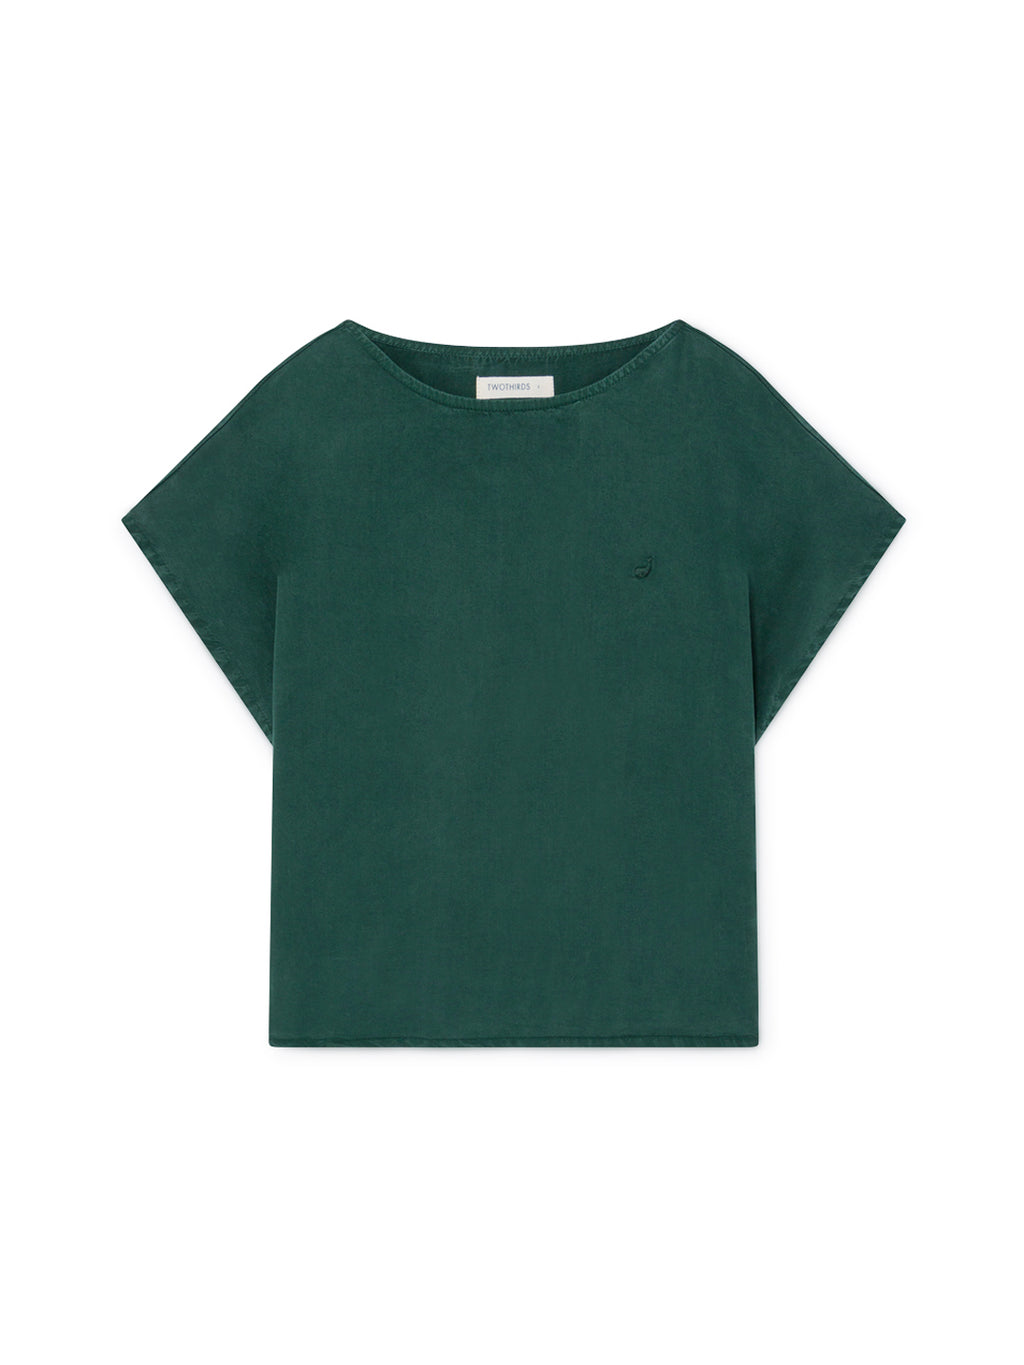 TWOTHIRDS Womens Top: Guafo - Trekking Green front